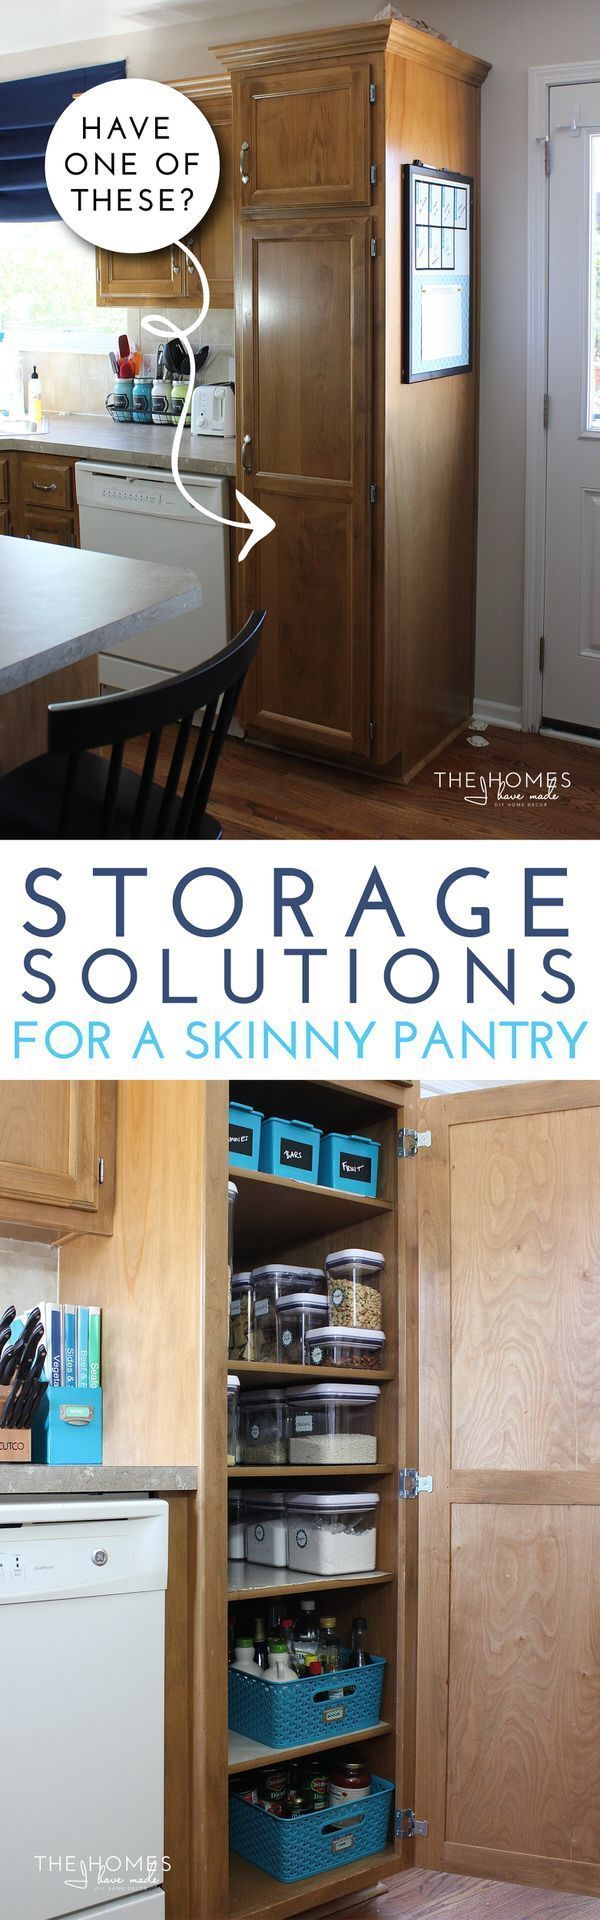 753 Best Images About Organizing Ideas On Pinterest